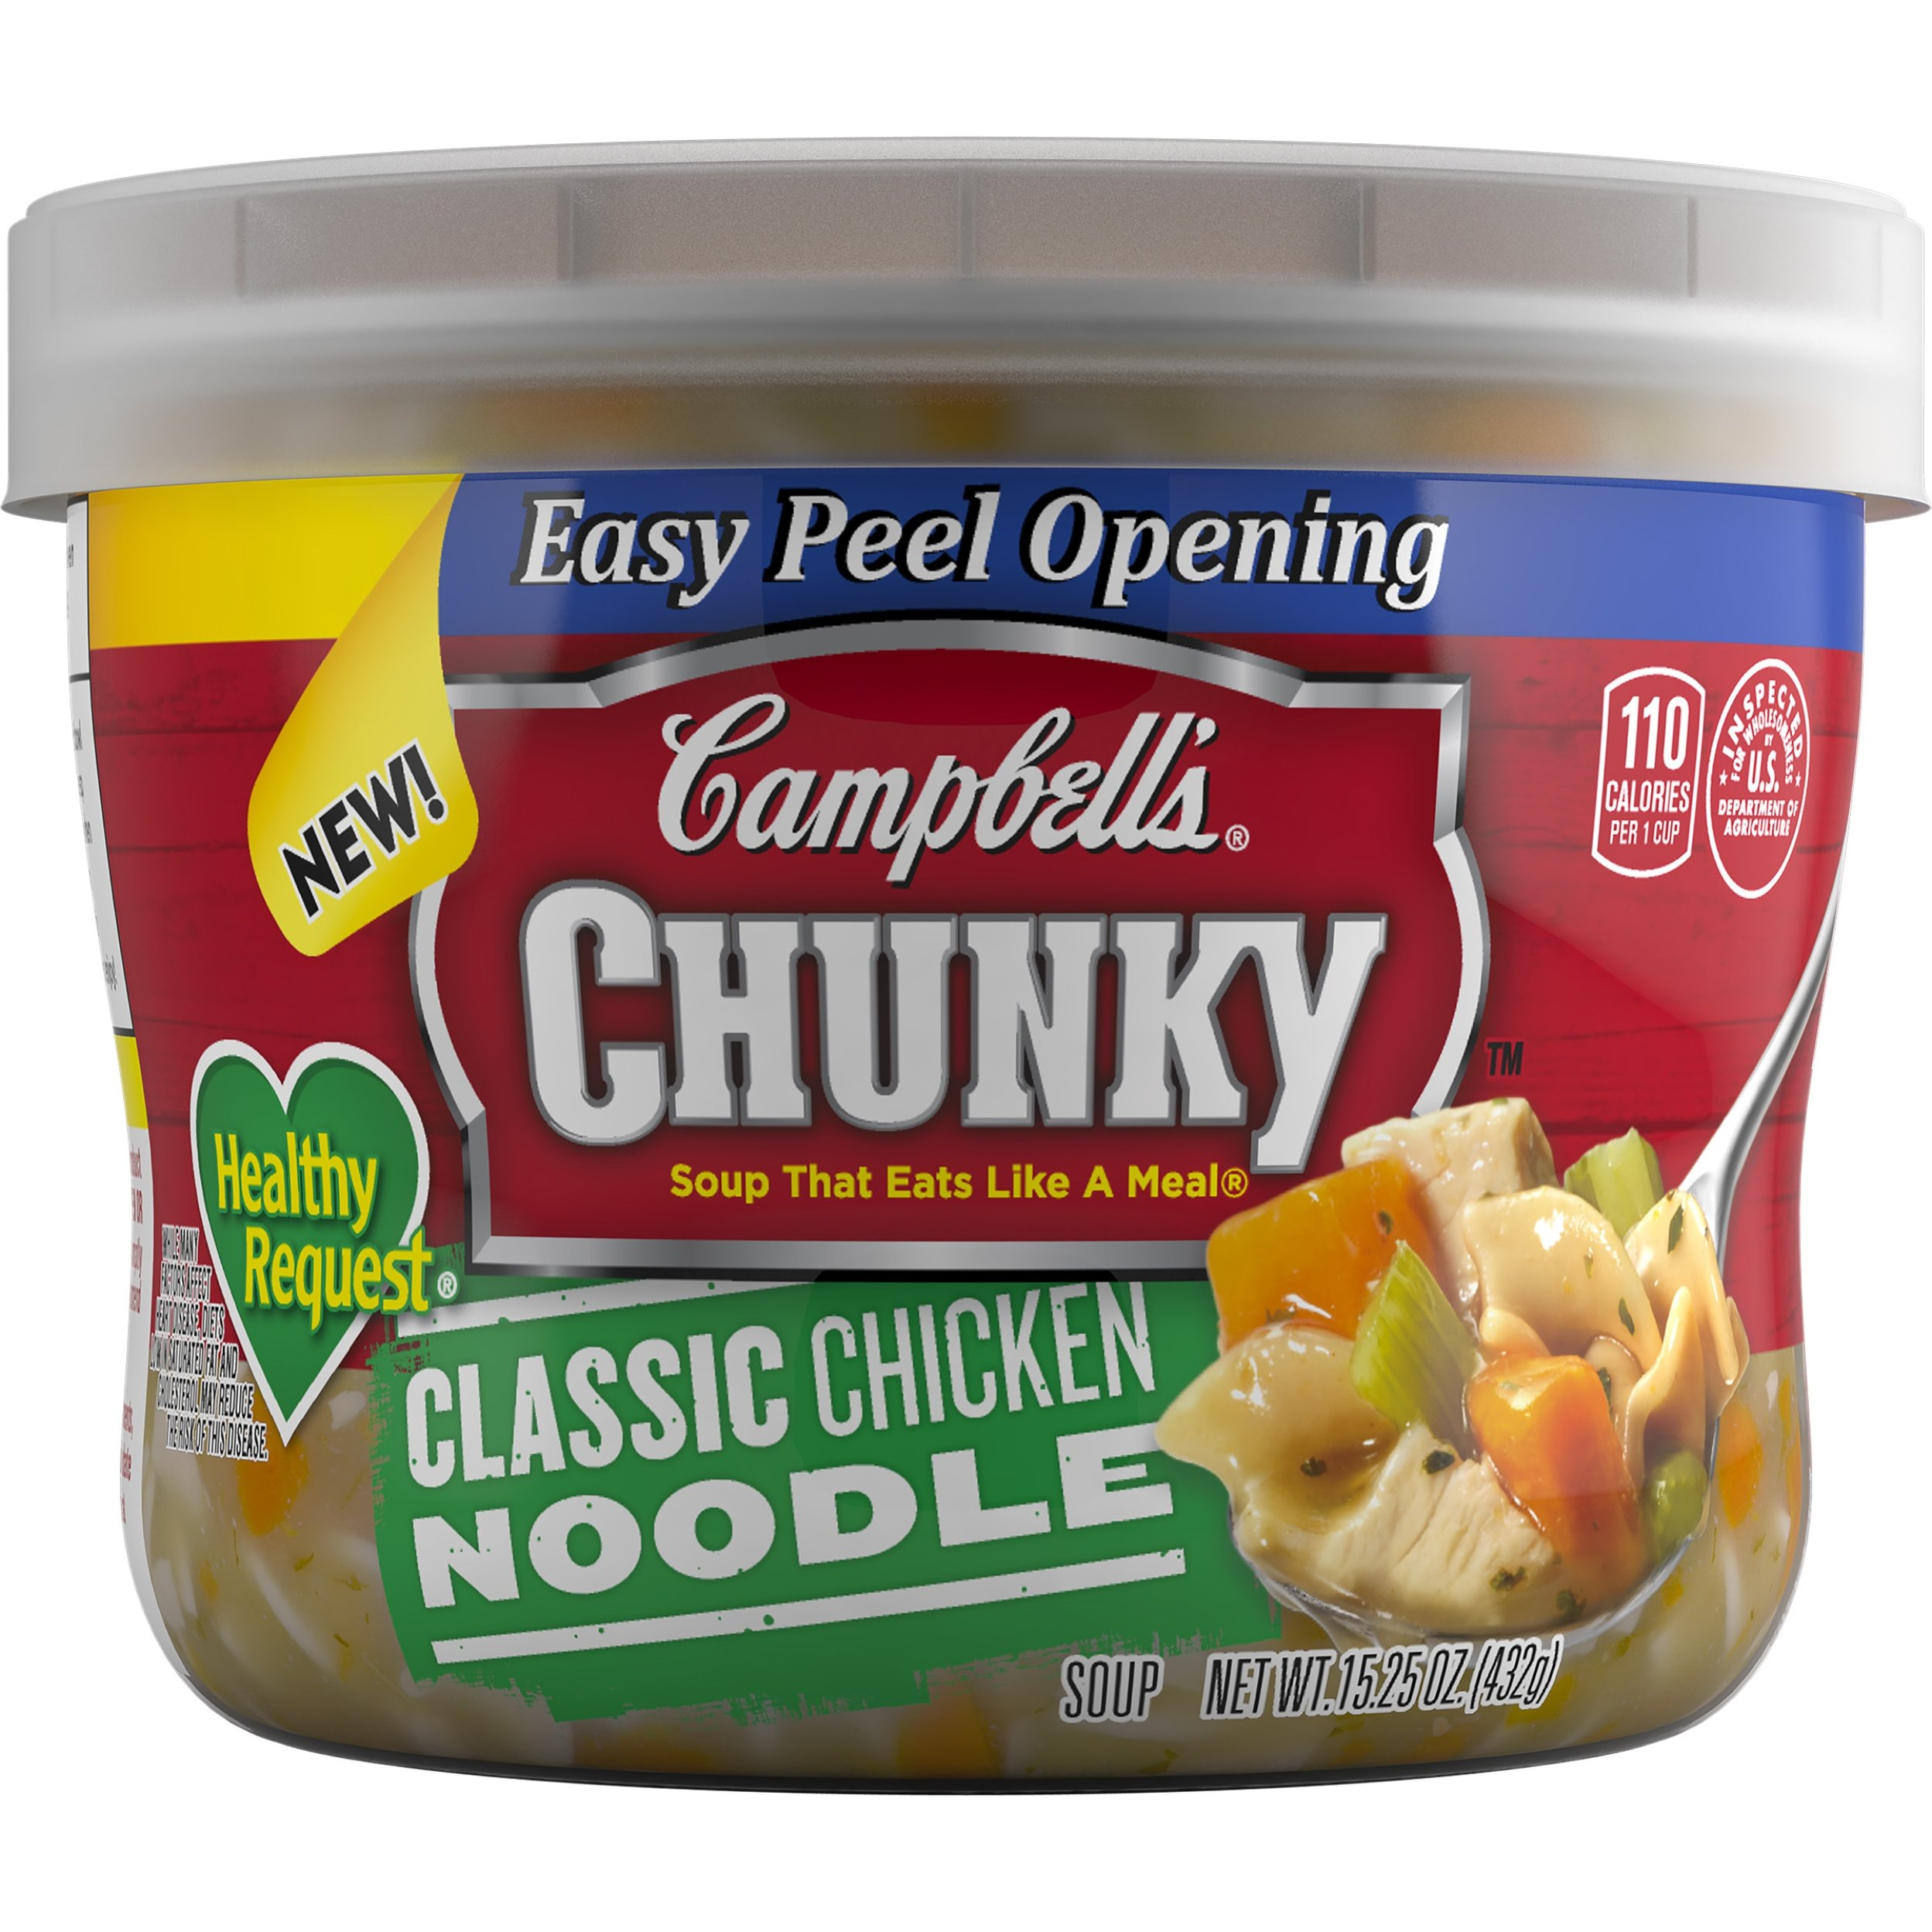 Campbell's Chunky Healthy Request Soup, Classic Chicken Noodle, 15.25 Ounce (Pack of 8) (Packaging May Vary)